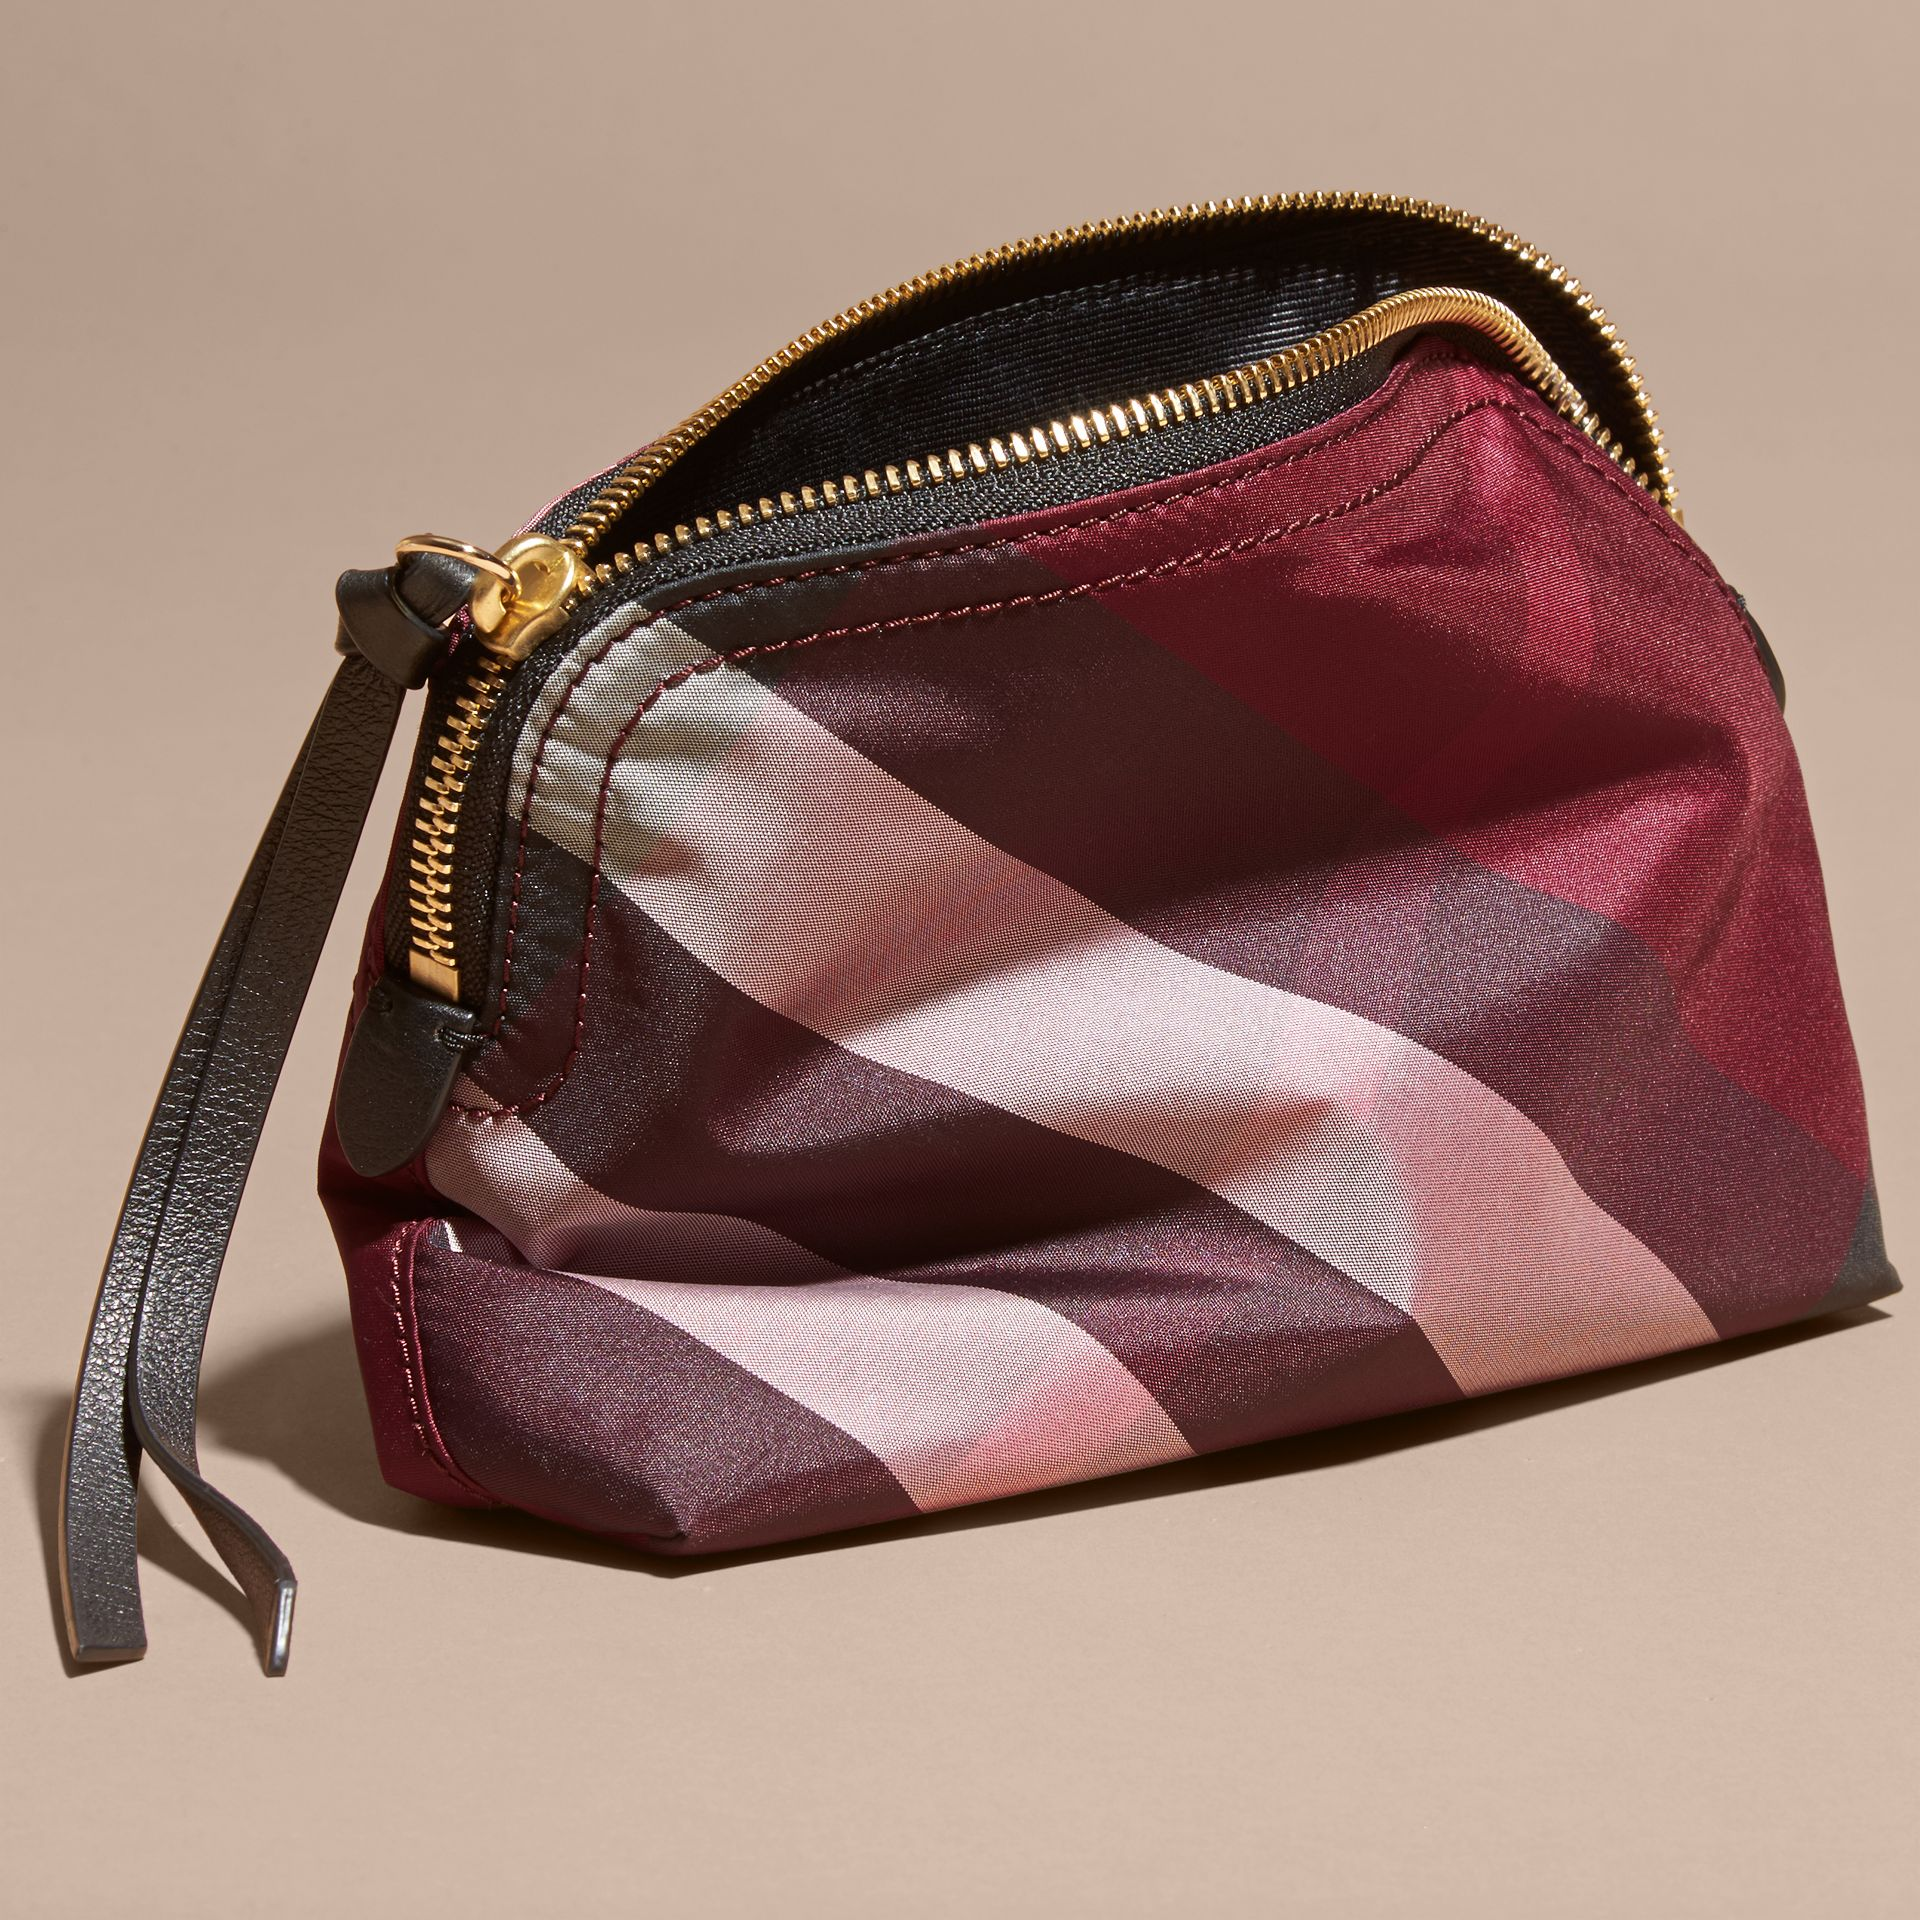 Medium Zip-top Check Technical Pouch in Plum - Women | Burberry - gallery image 4